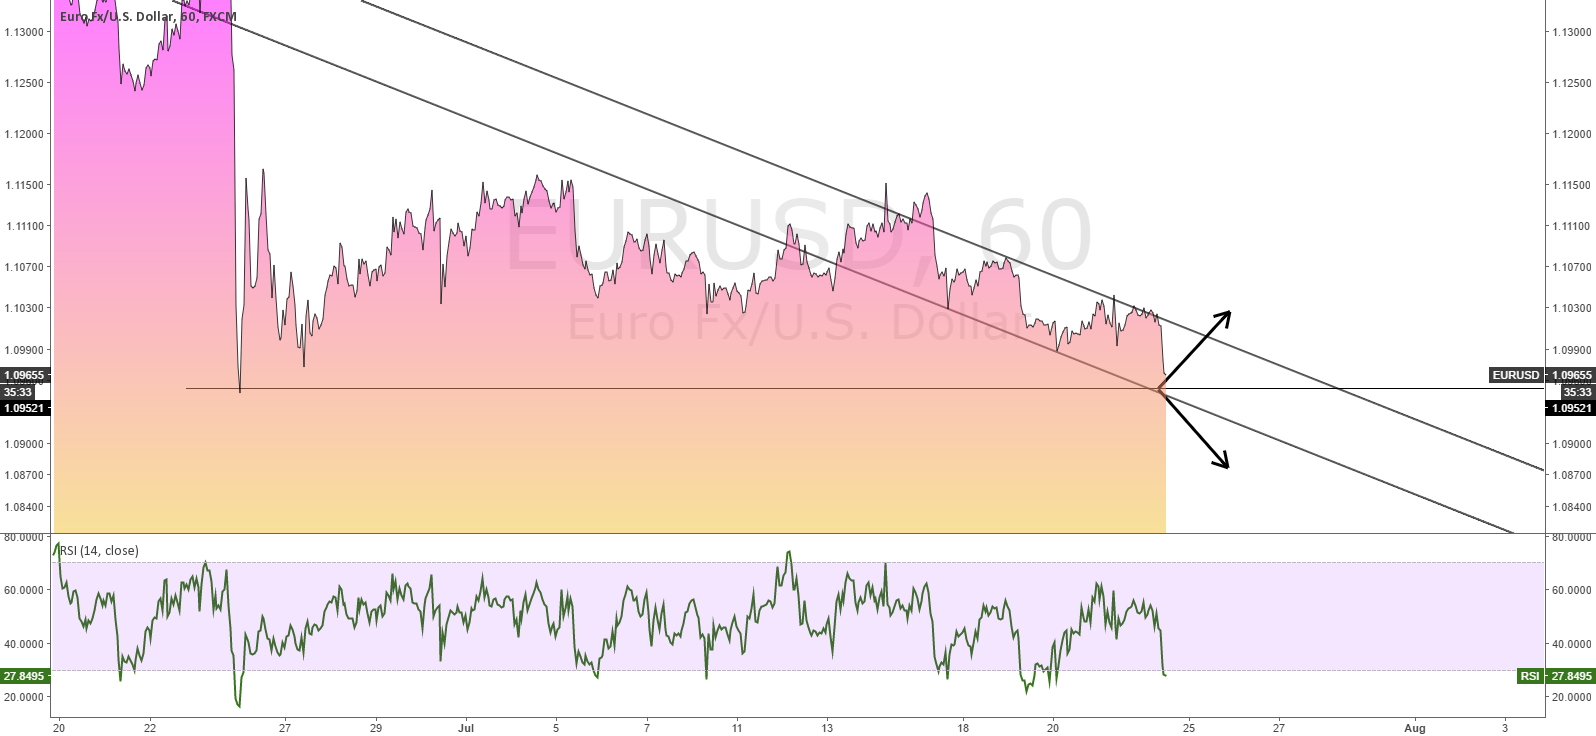 EURUSD RIGHT AT THE EDGE OF BREAKOUT OF RANGE LOWS.